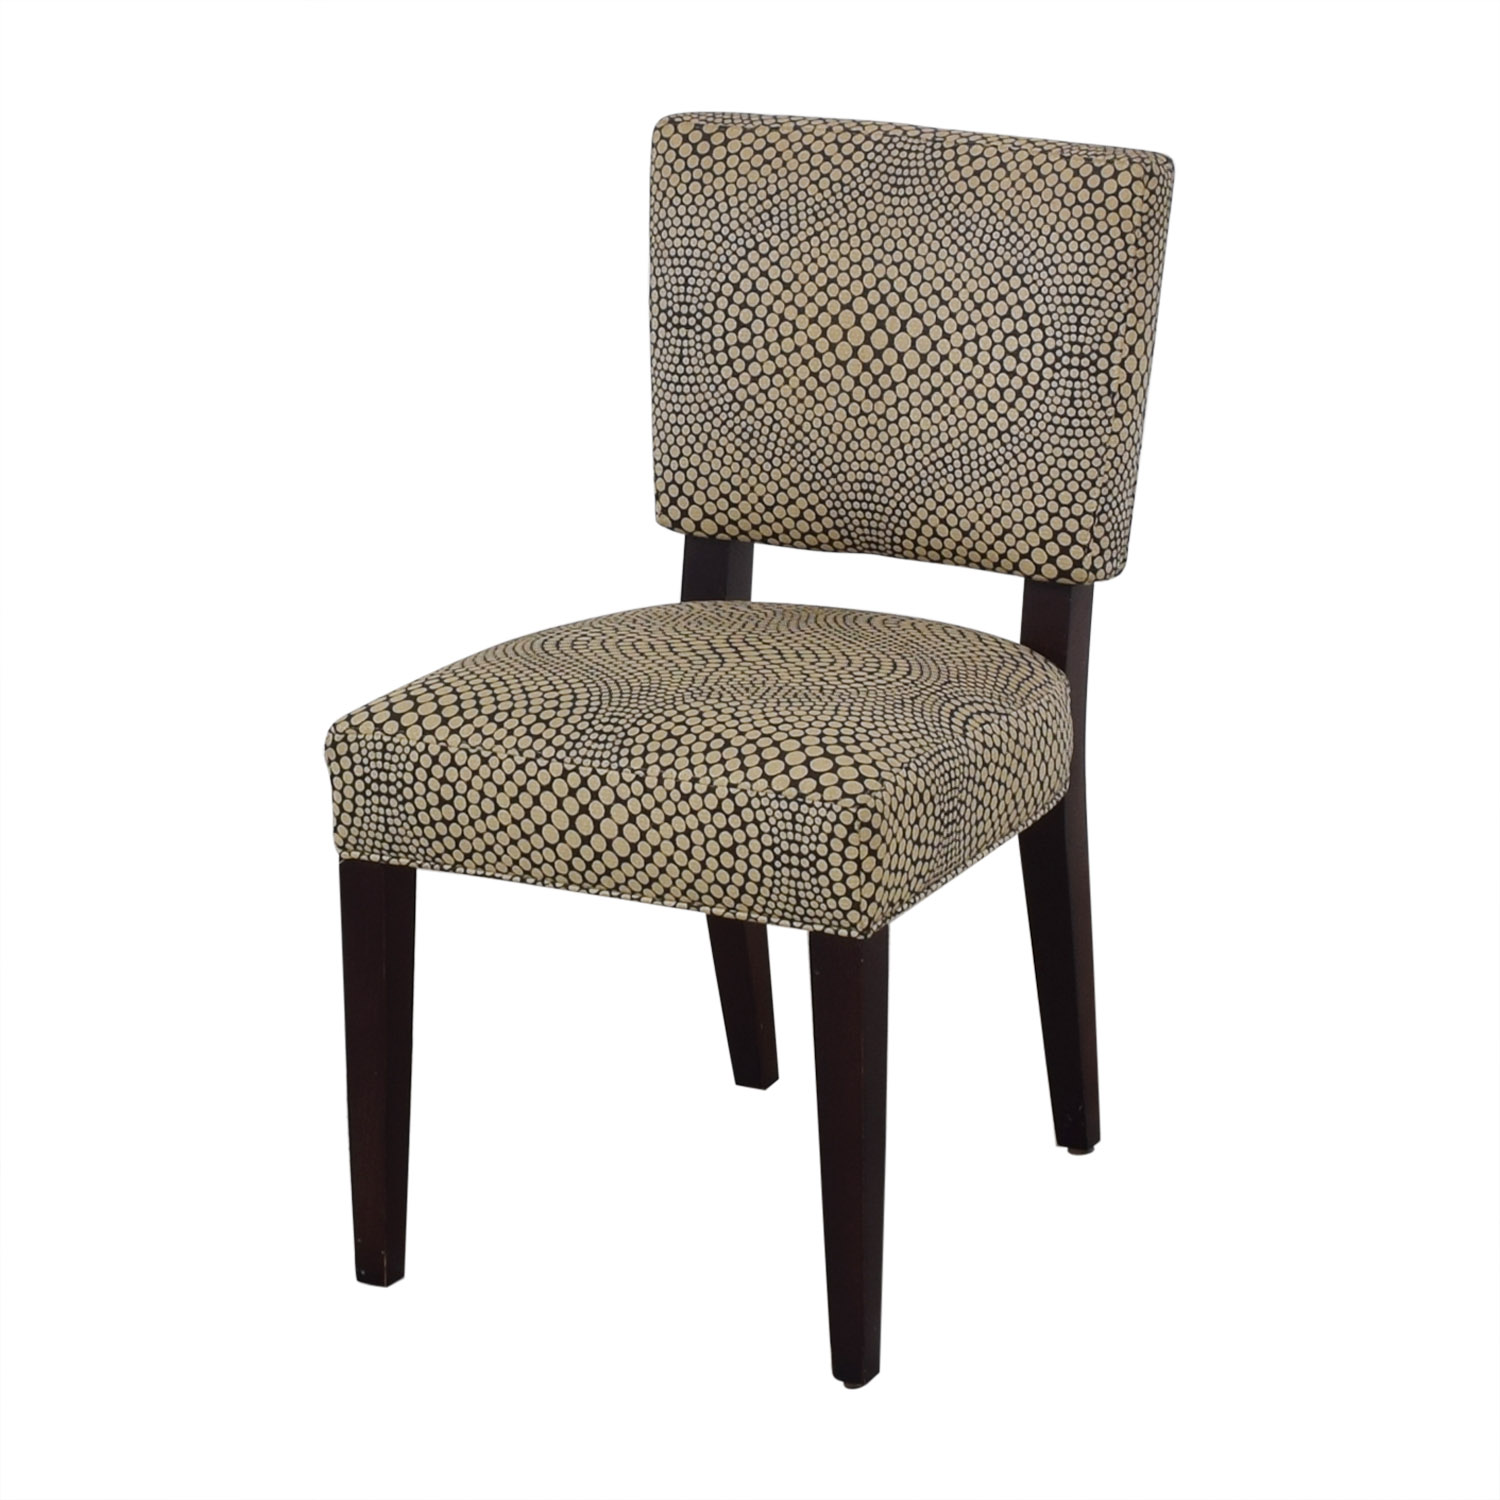 Room & Board Room & Board Dining Chairs on sale